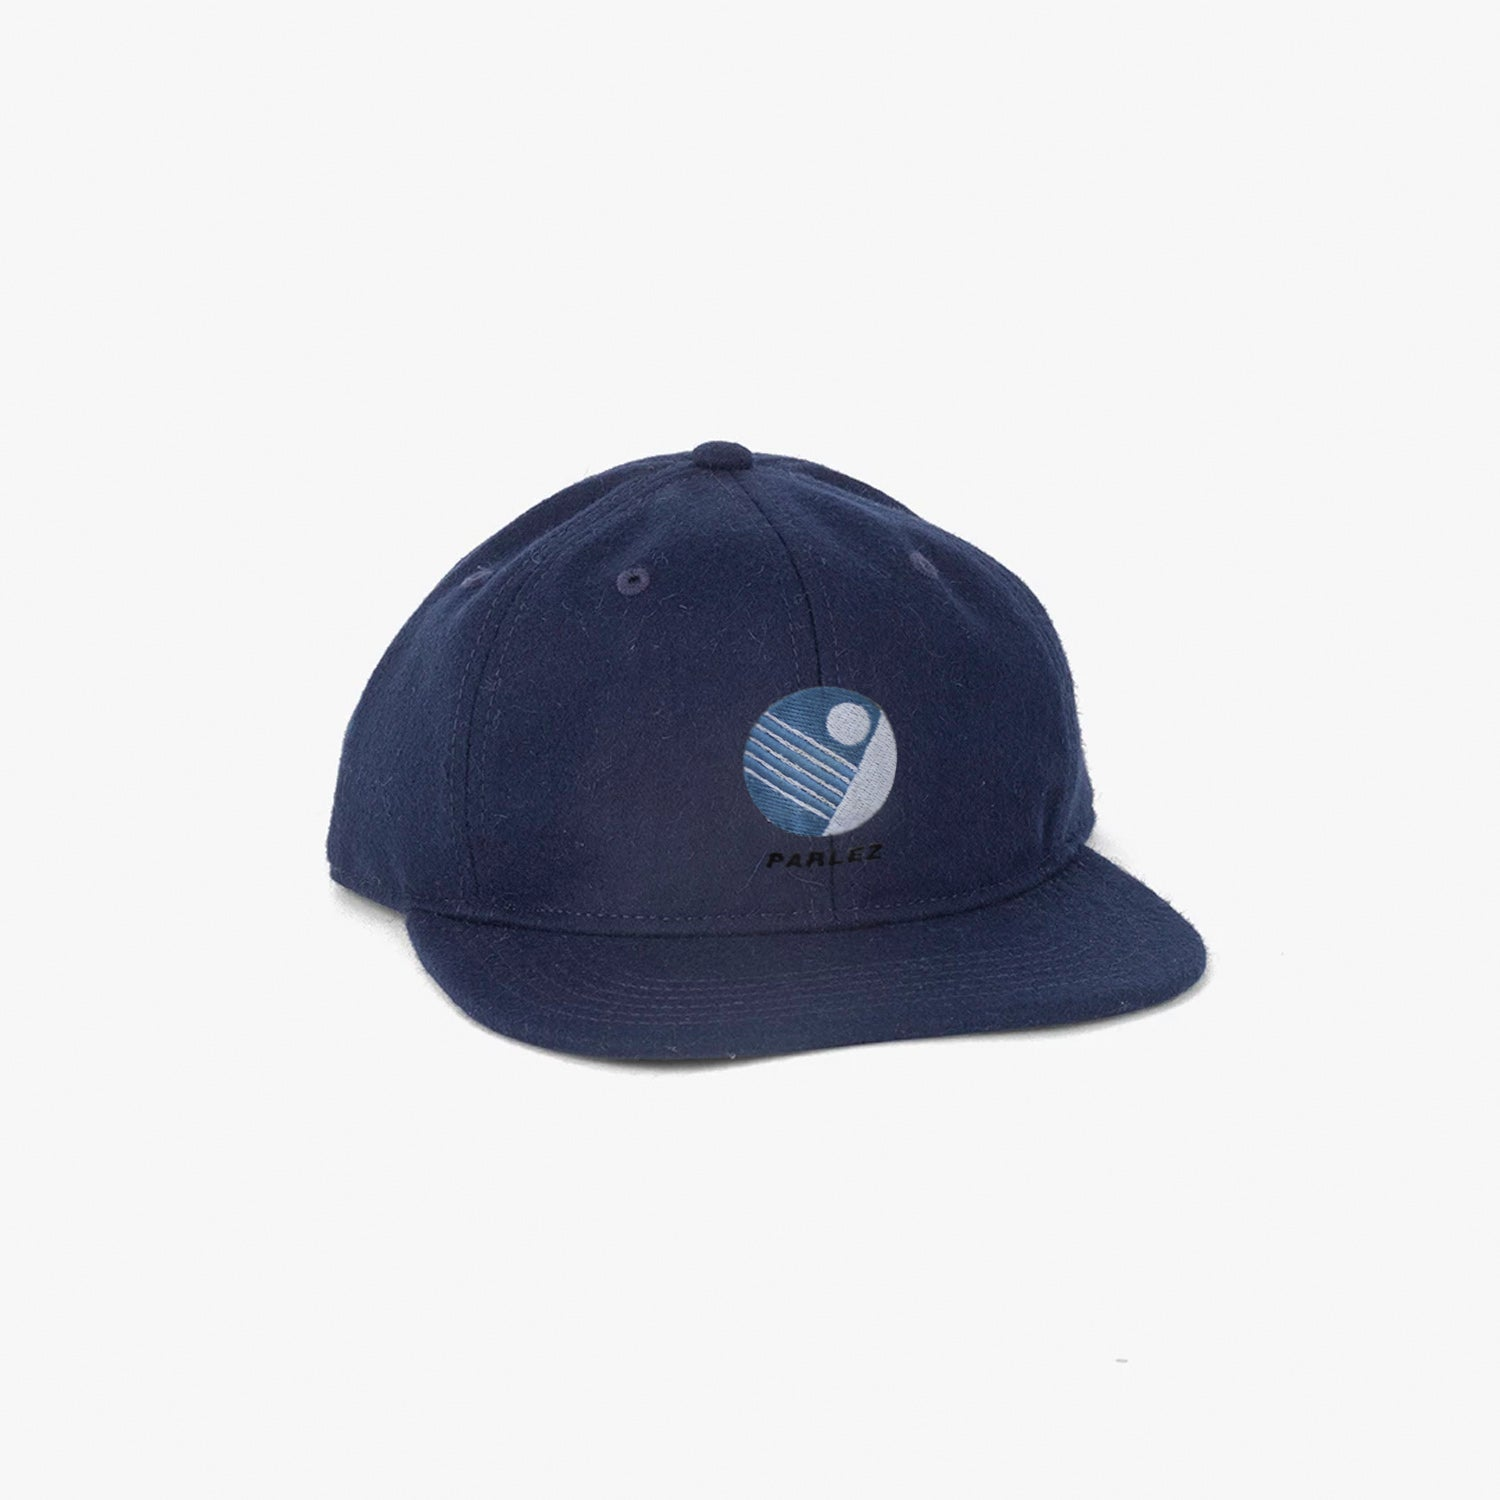 Parlez x Jingo Wool 6 Panel - Navy